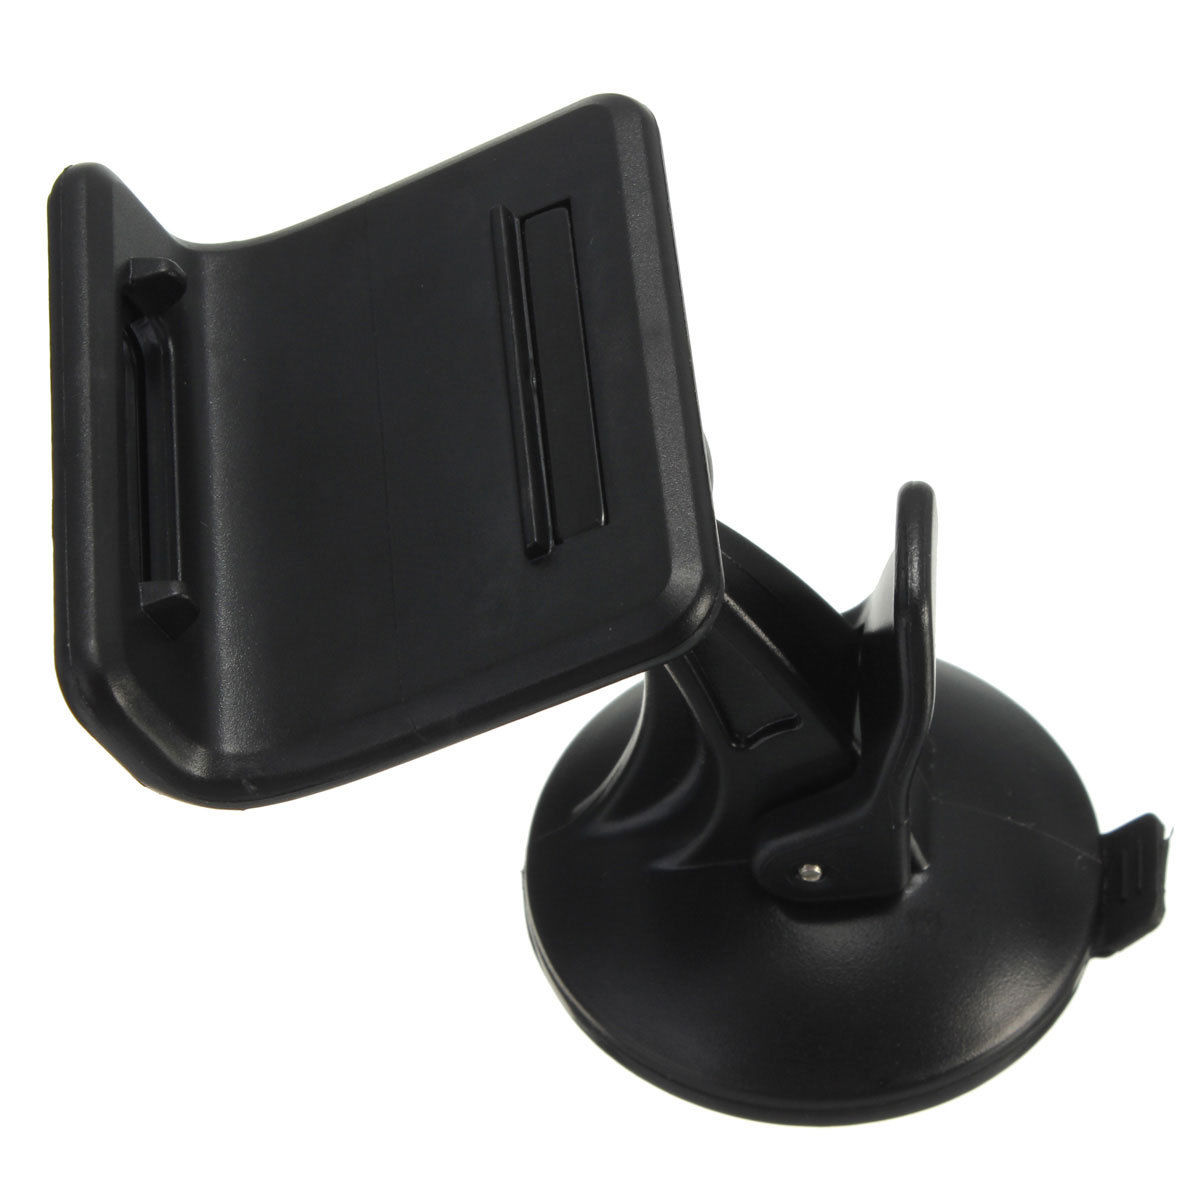 Air Vent Car GPS Devices Mount Cradle Holder for TomTom GO 1000 1005 2050